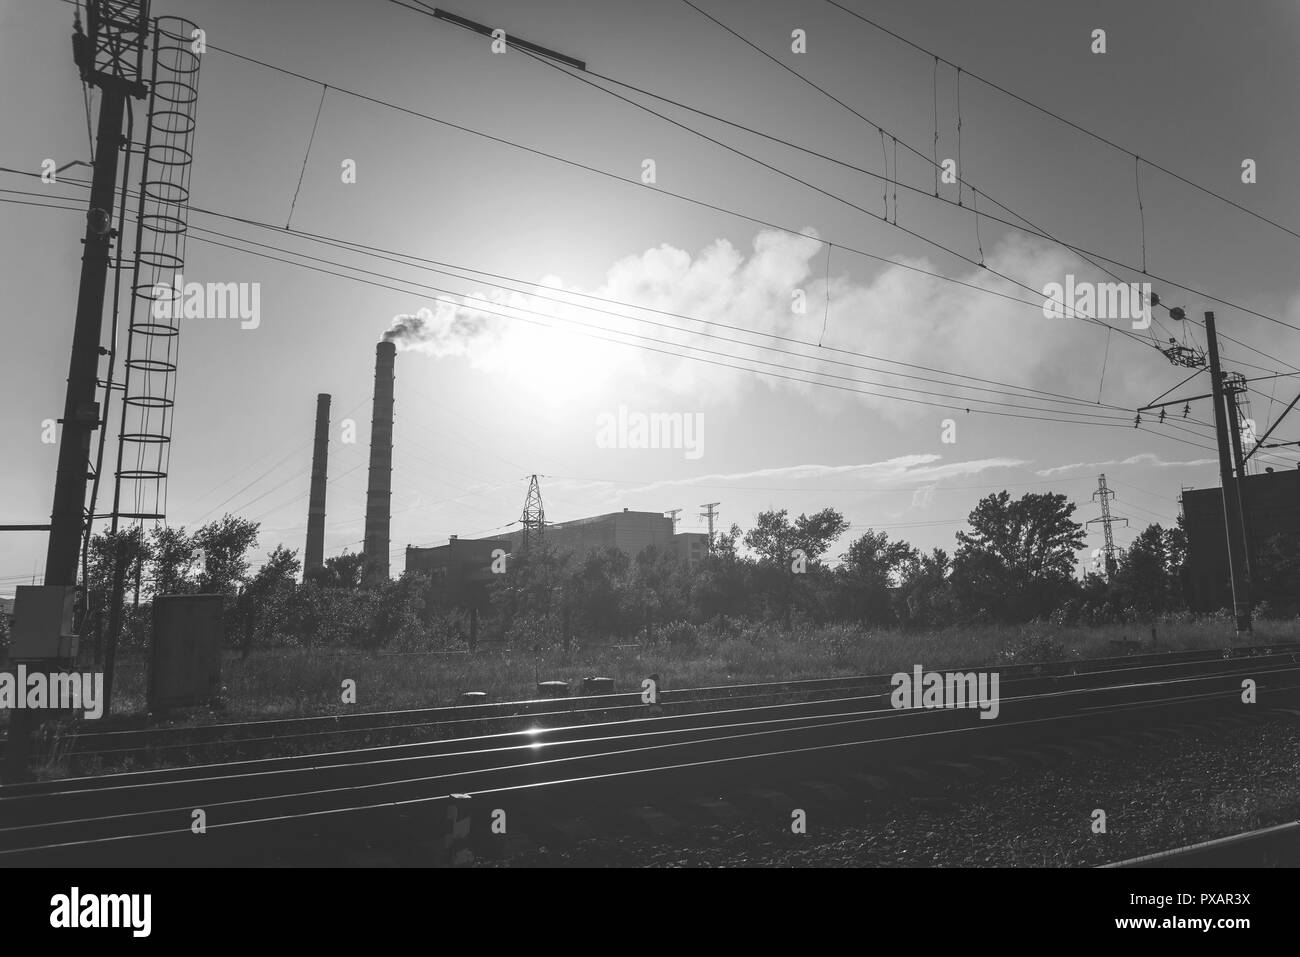 thermal power plant near  - Stock Image